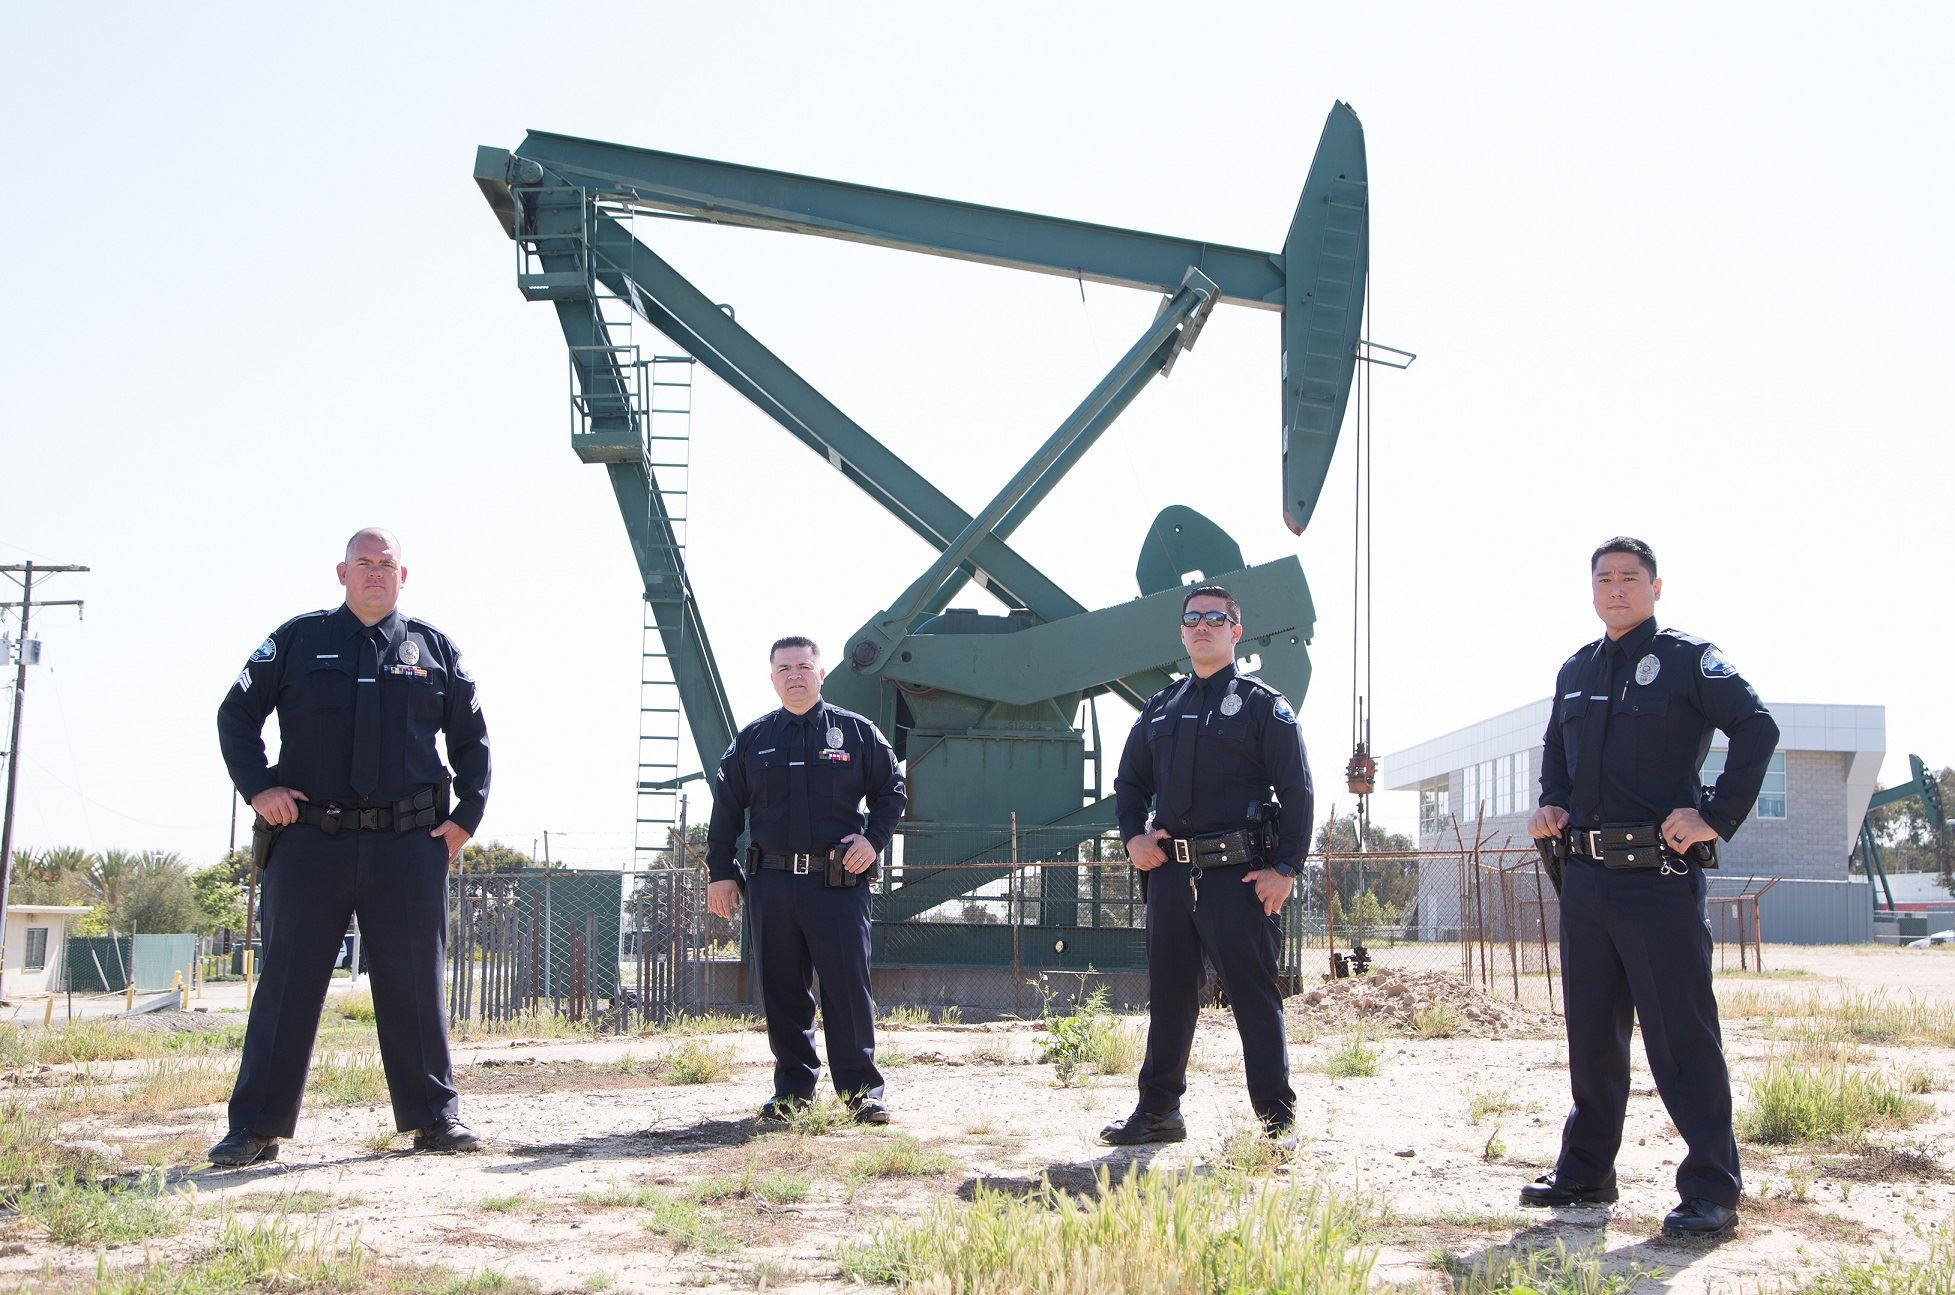 Officers standing outside in front of oil well